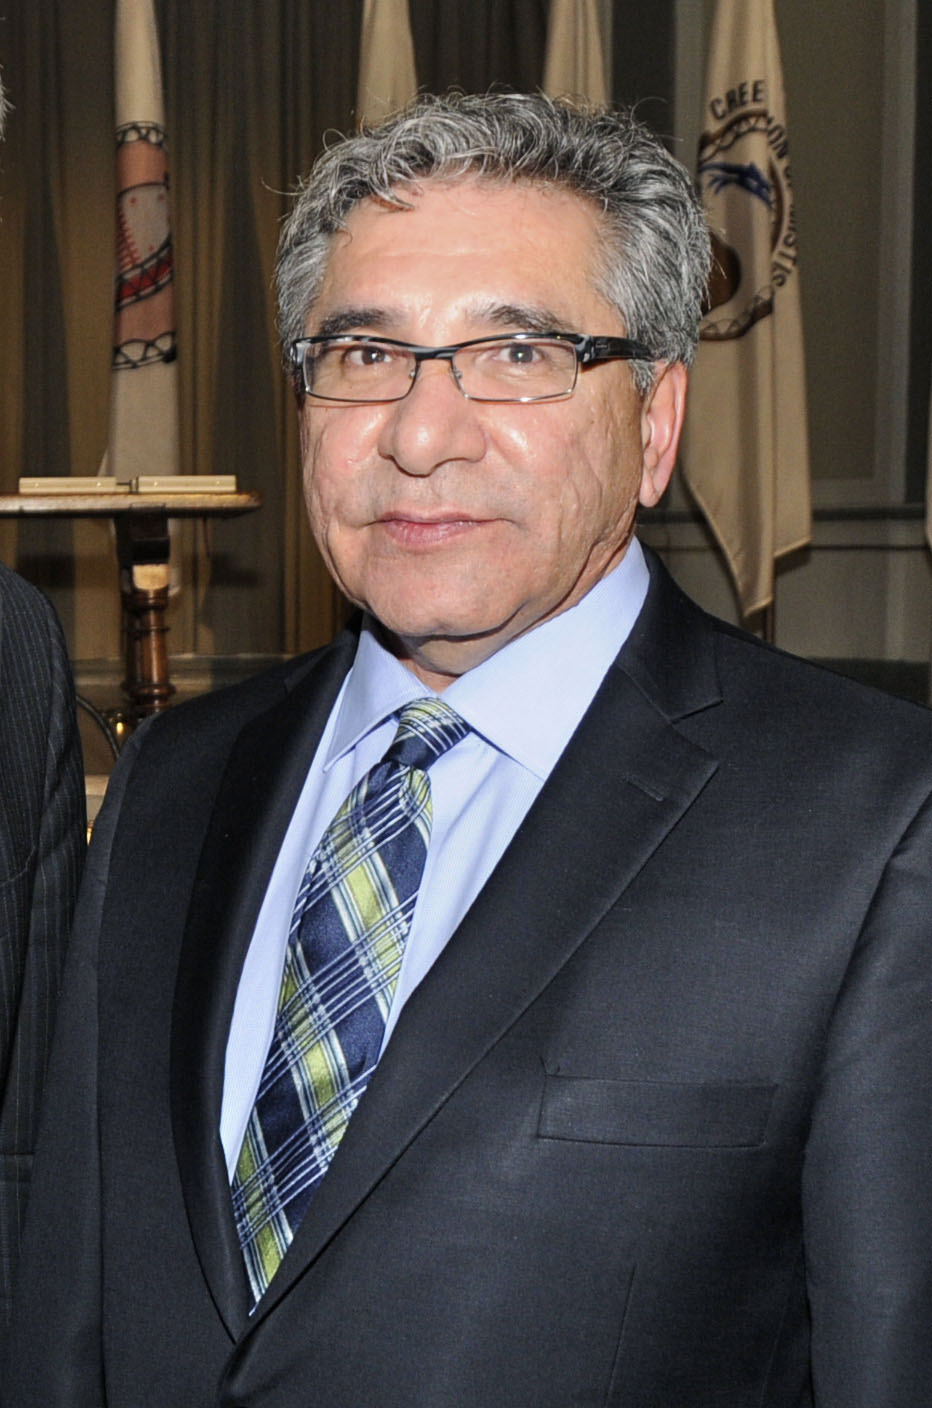 Dr. Abel Bosum was elected in 2017